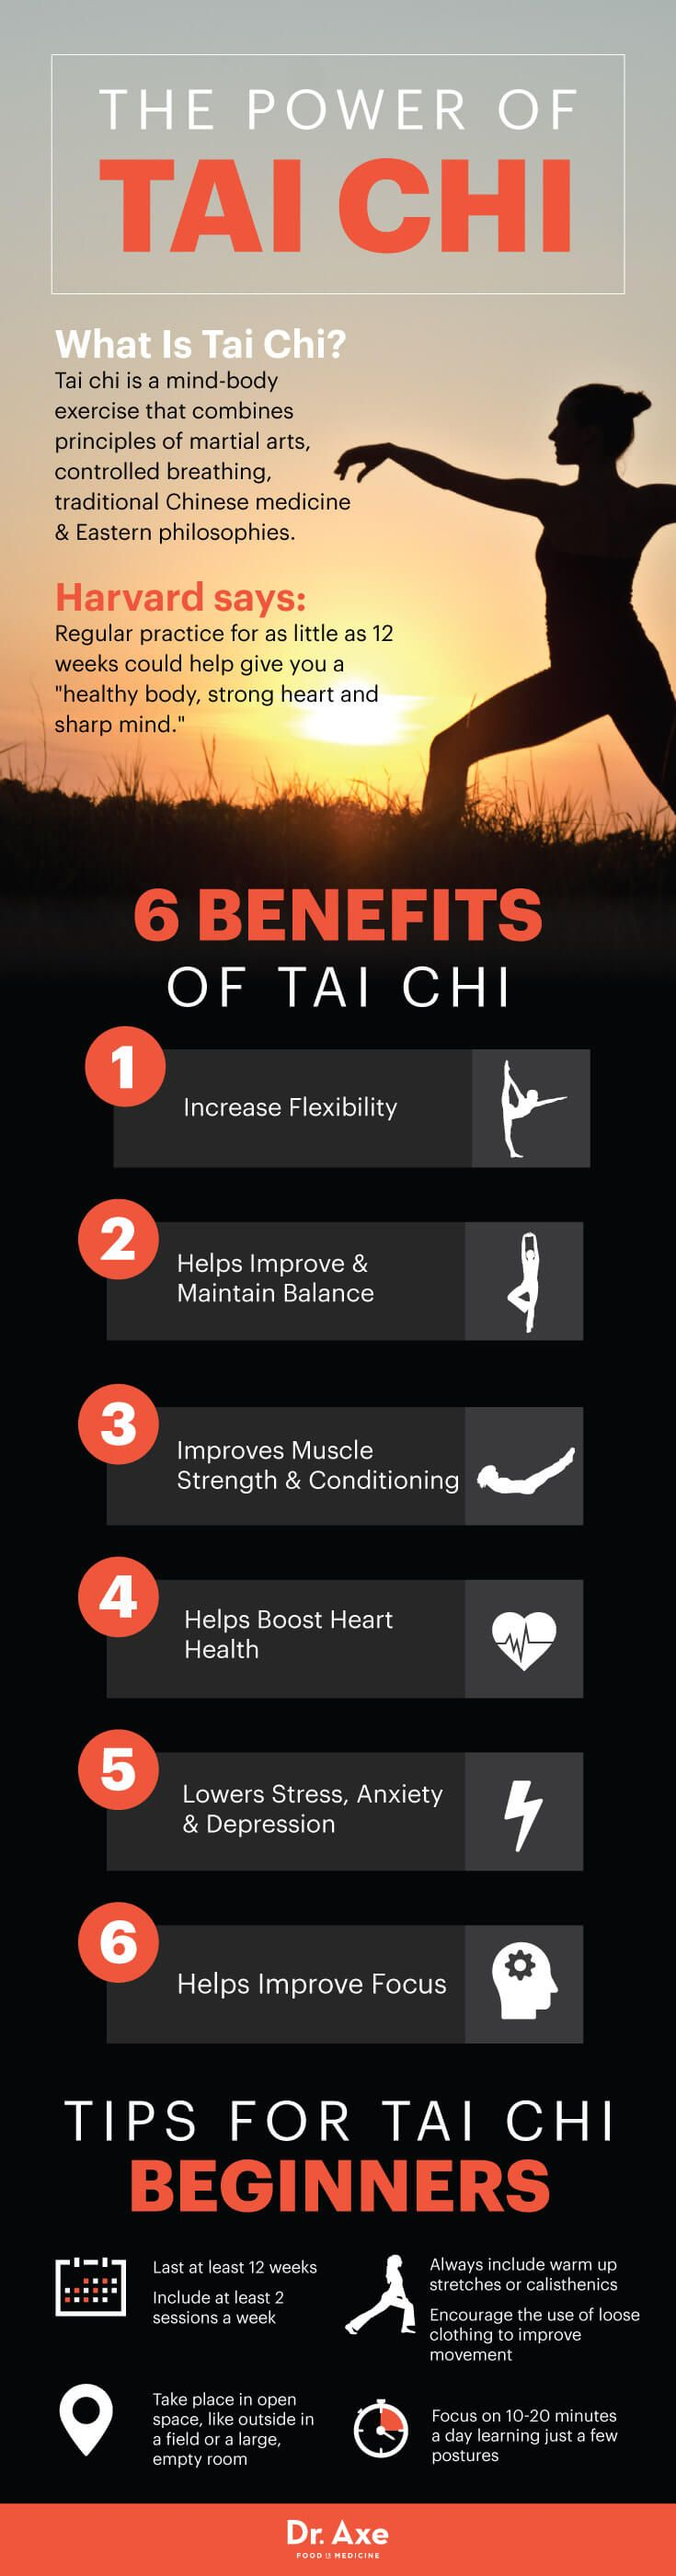 tai chi moves - dr. axe http://www.draxe.com #health #holistic #natural                                                                                                                                                                                 Más